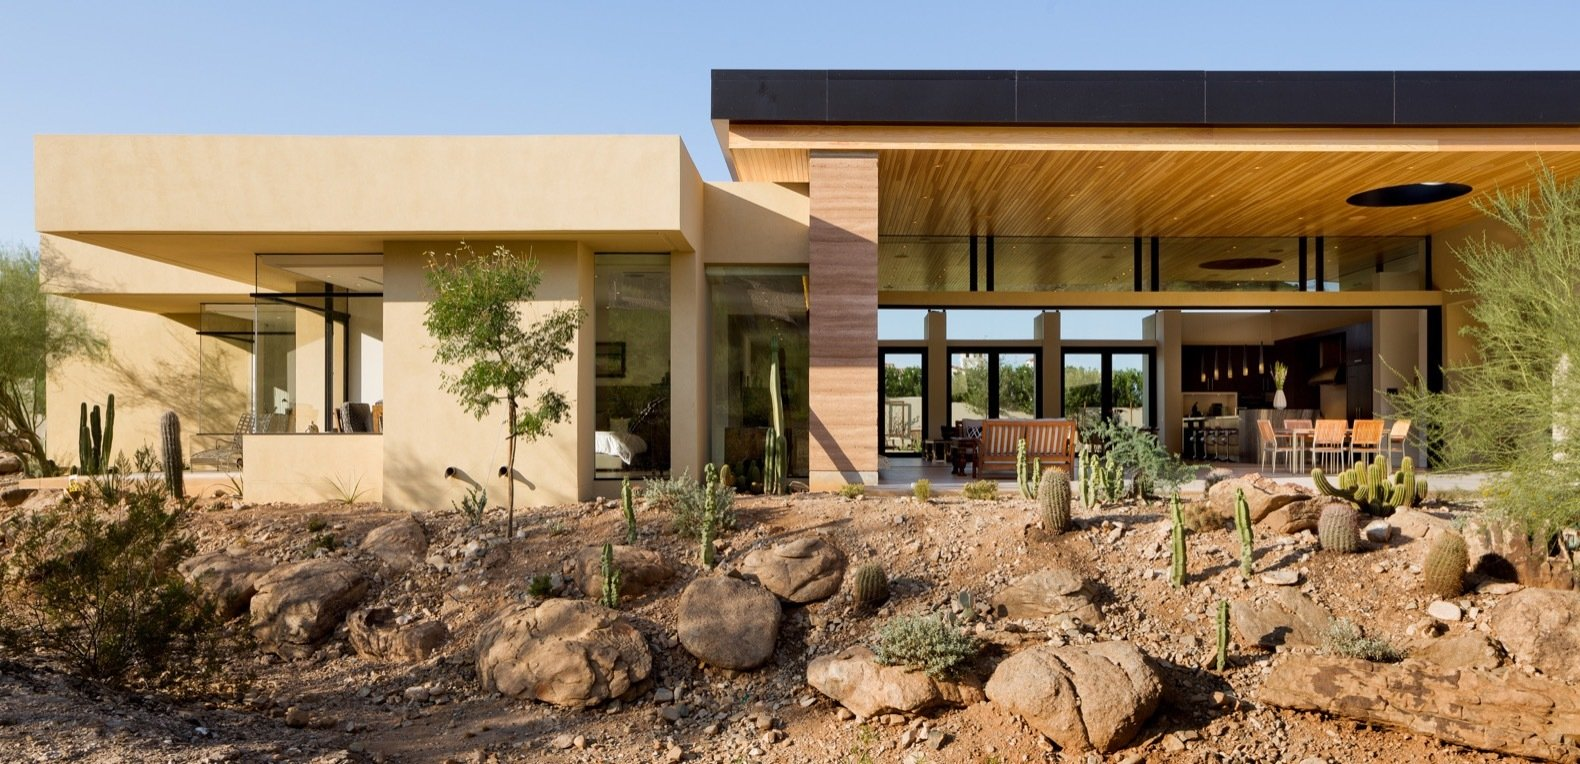 A north-facing view of the open great room and master suite to the left from the desert wash.